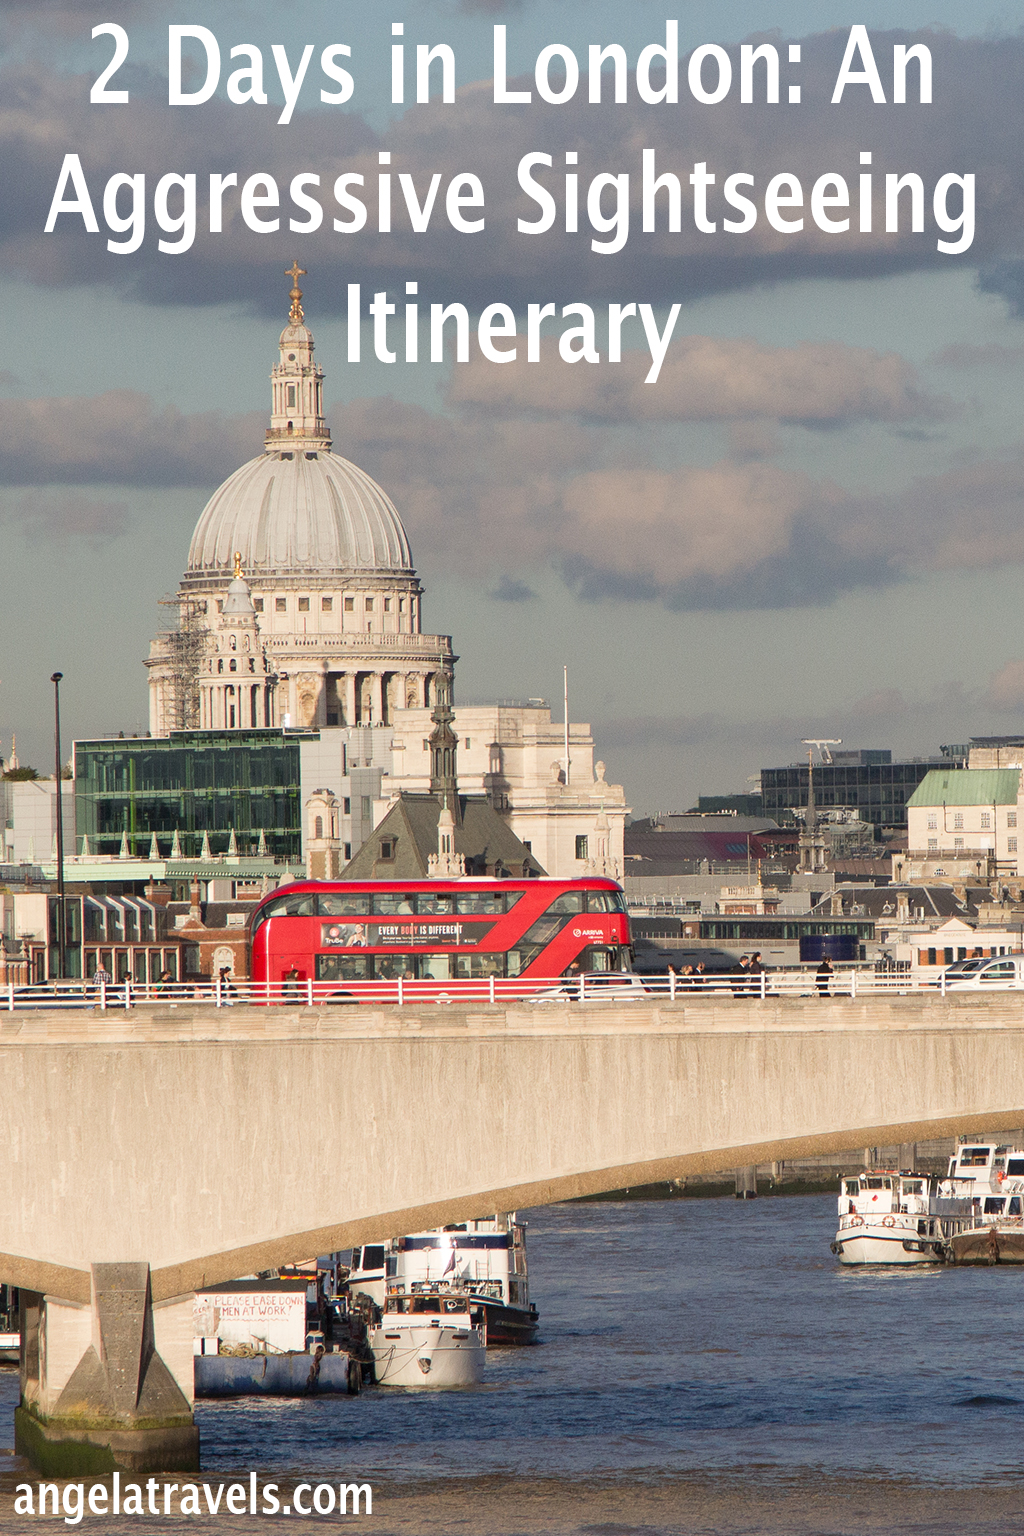 2 Days in London: An Aggressive Sightseeing Itinerary